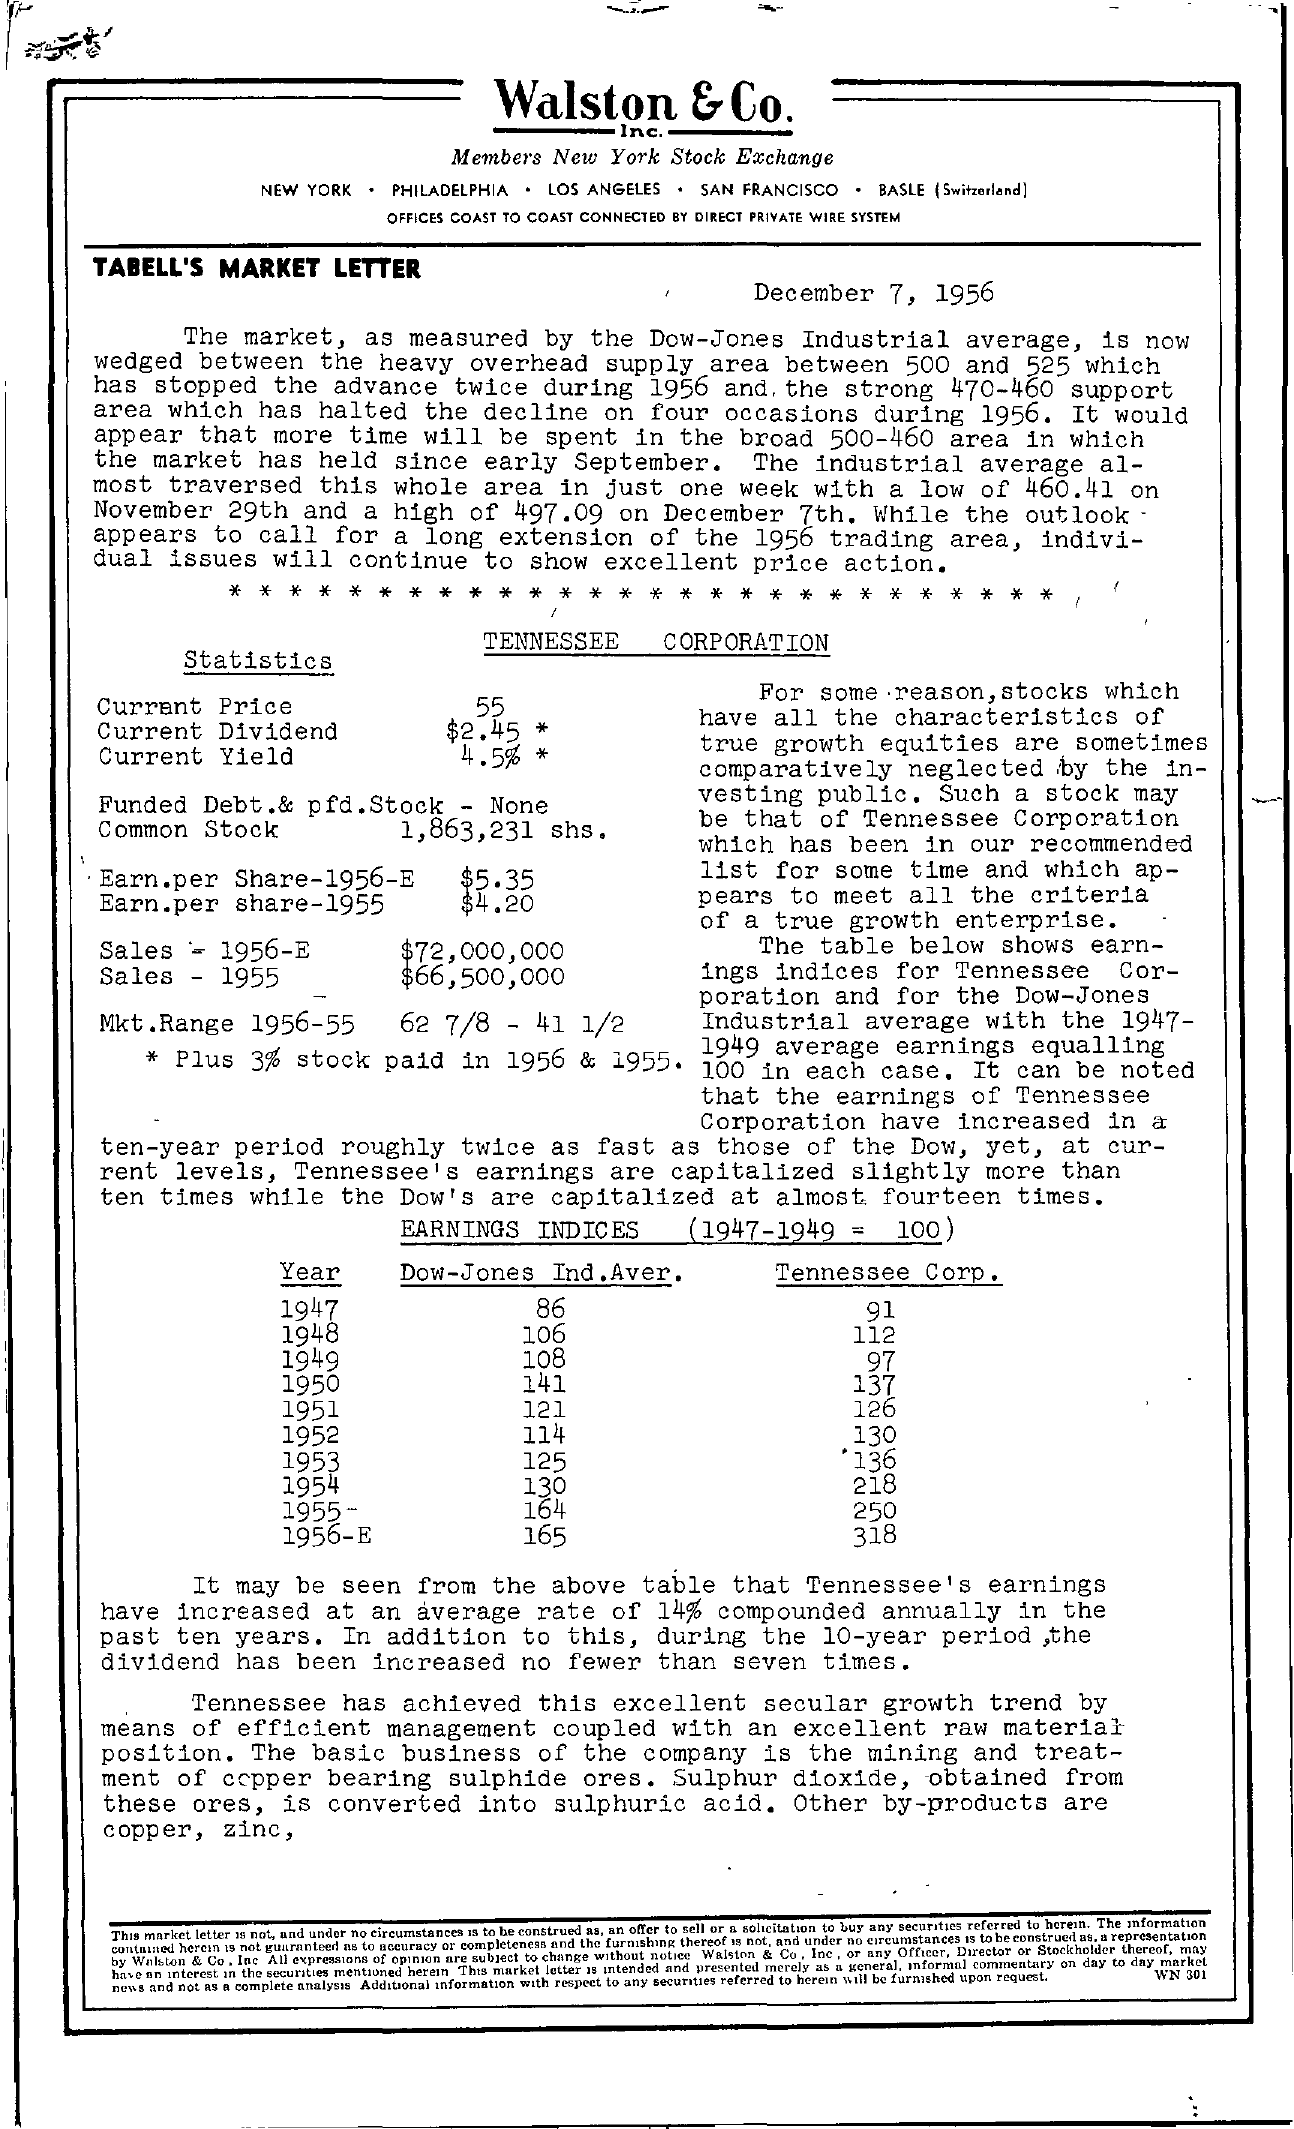 Tabell's Market Letter - December 07, 1956 page 1